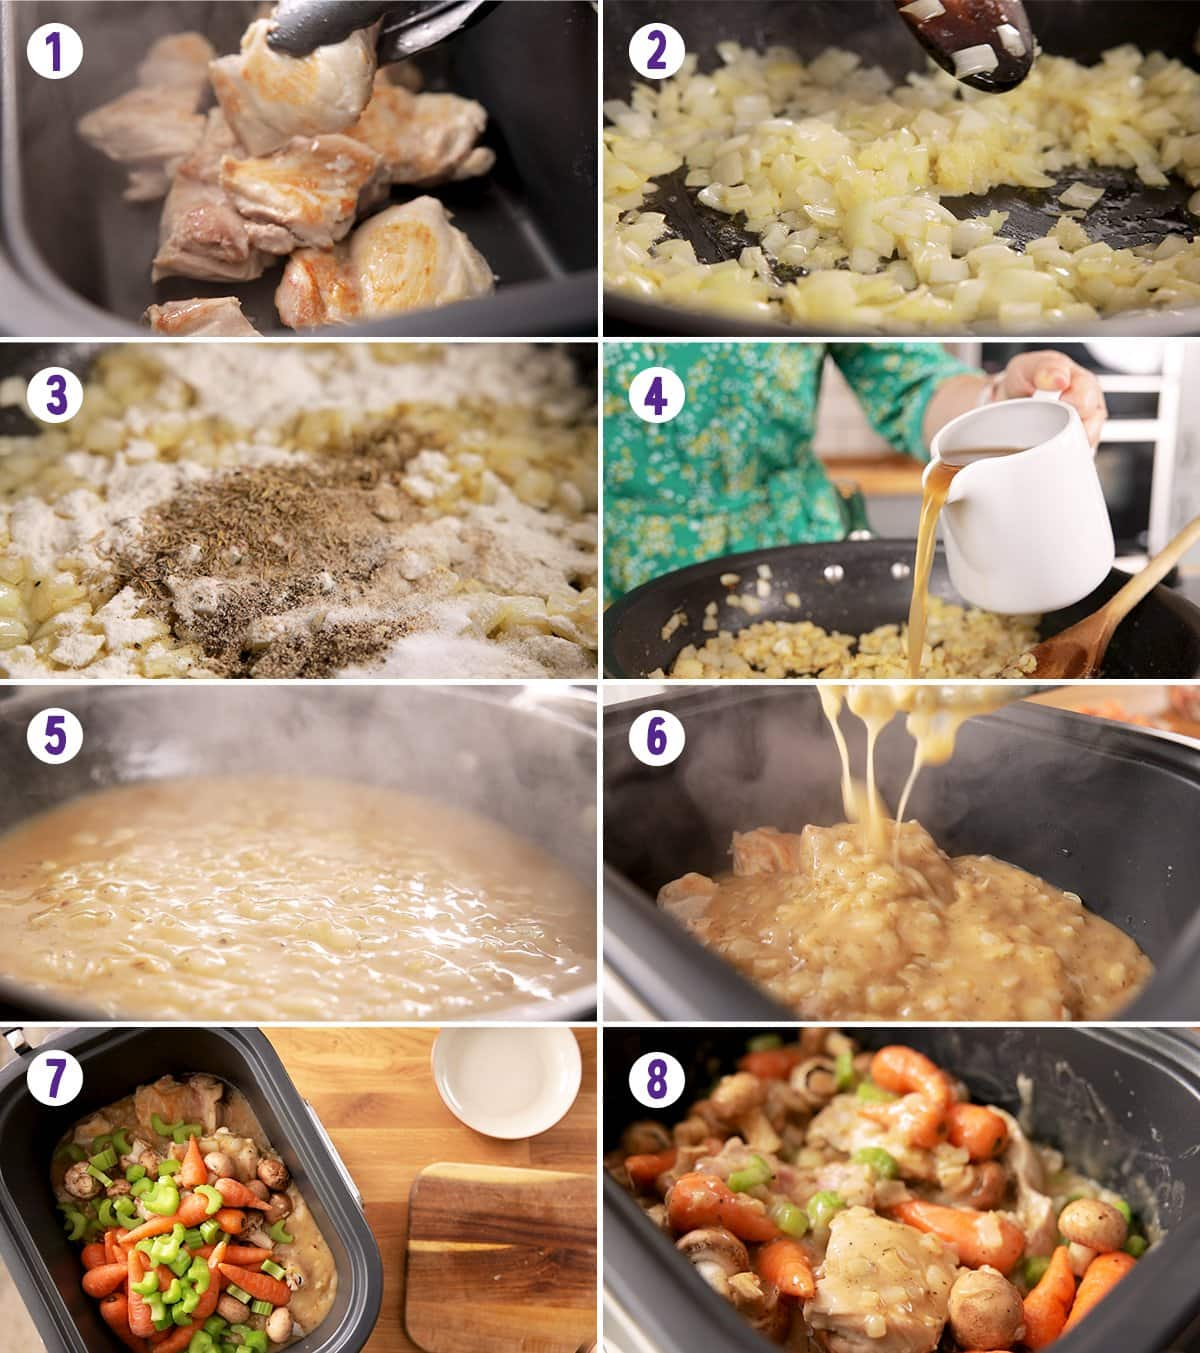 8 image collage showing how to make chicken casserole in the slow cooker